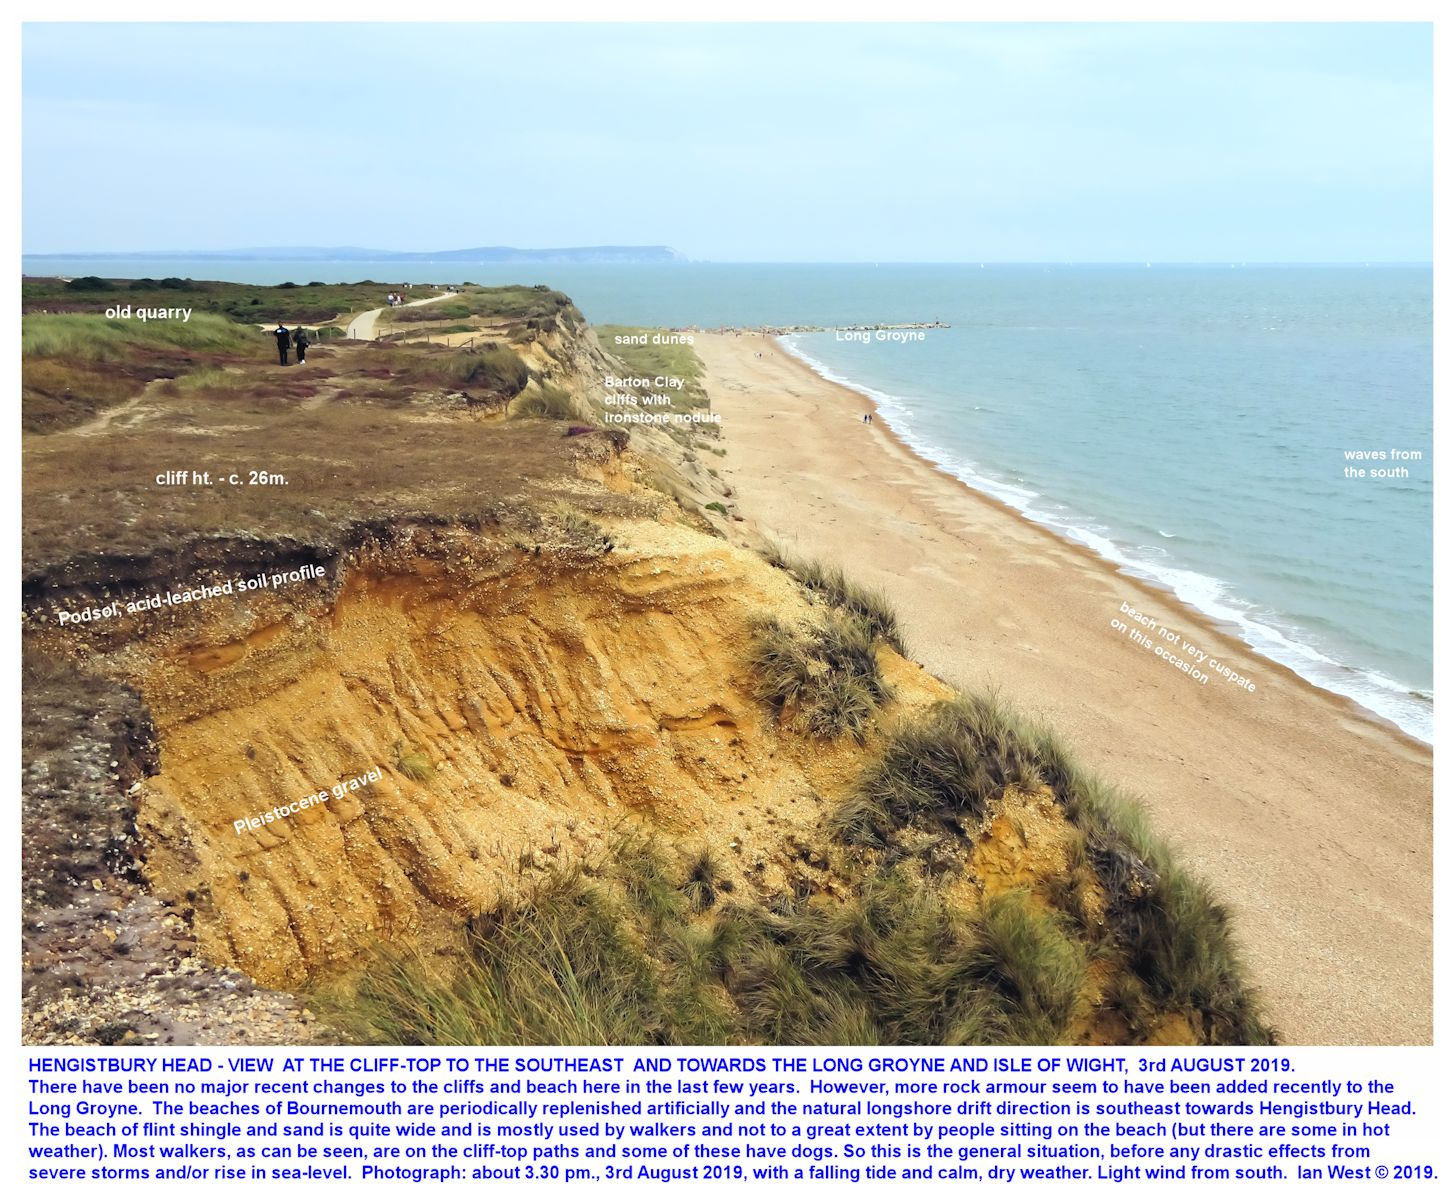 The cliffs of Eocene strata, with Pleistocene gravel above, as seen from the cliff top at Warren Hill, Hengistbury Head, looking southeast towards the groyne and the Isle of Wight, 3rd August 2019, Ian West